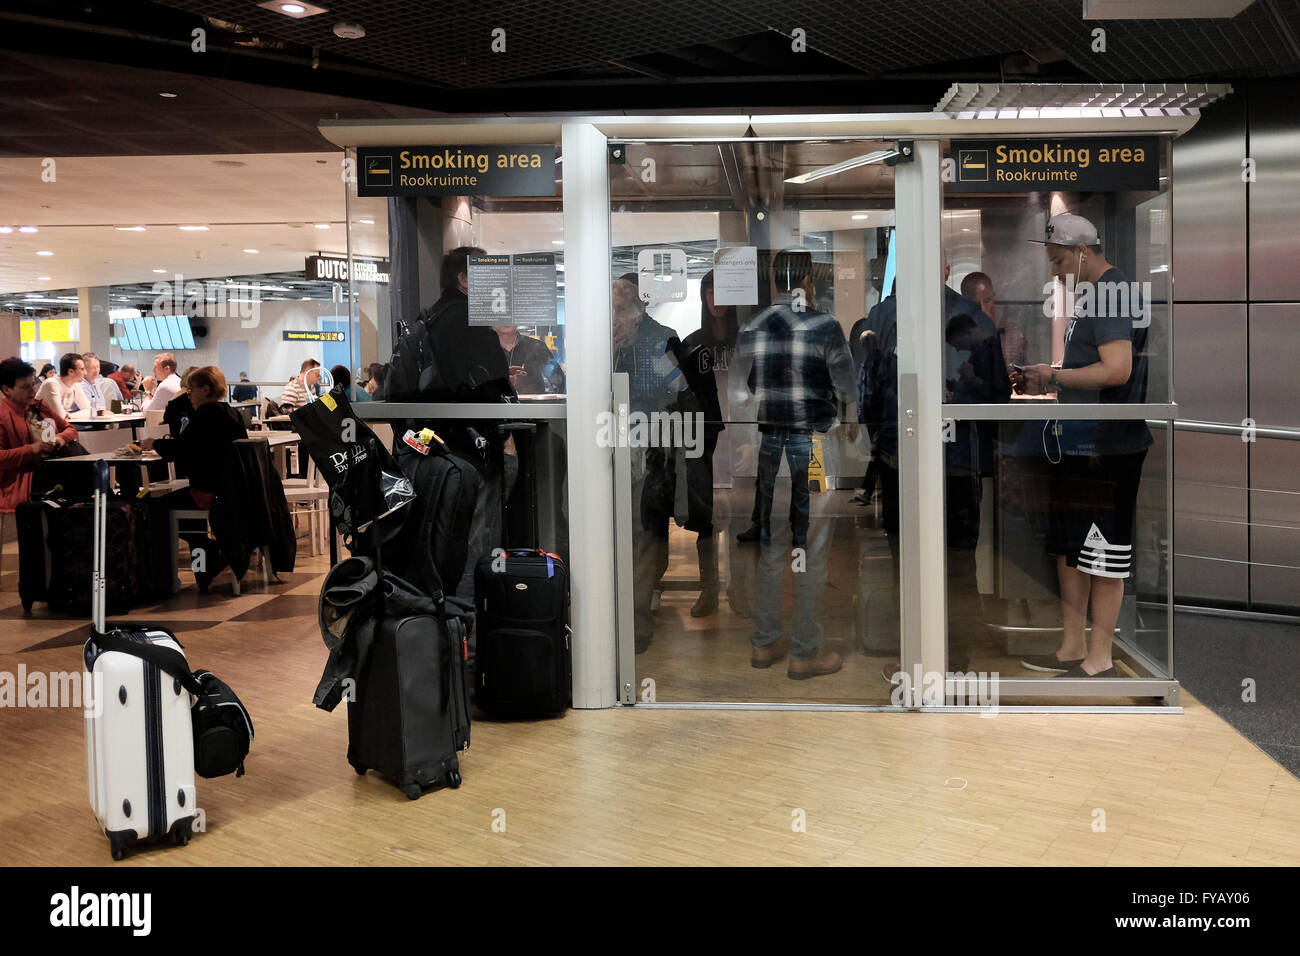 smoking room in schiphol airport amsterdam holland stock image